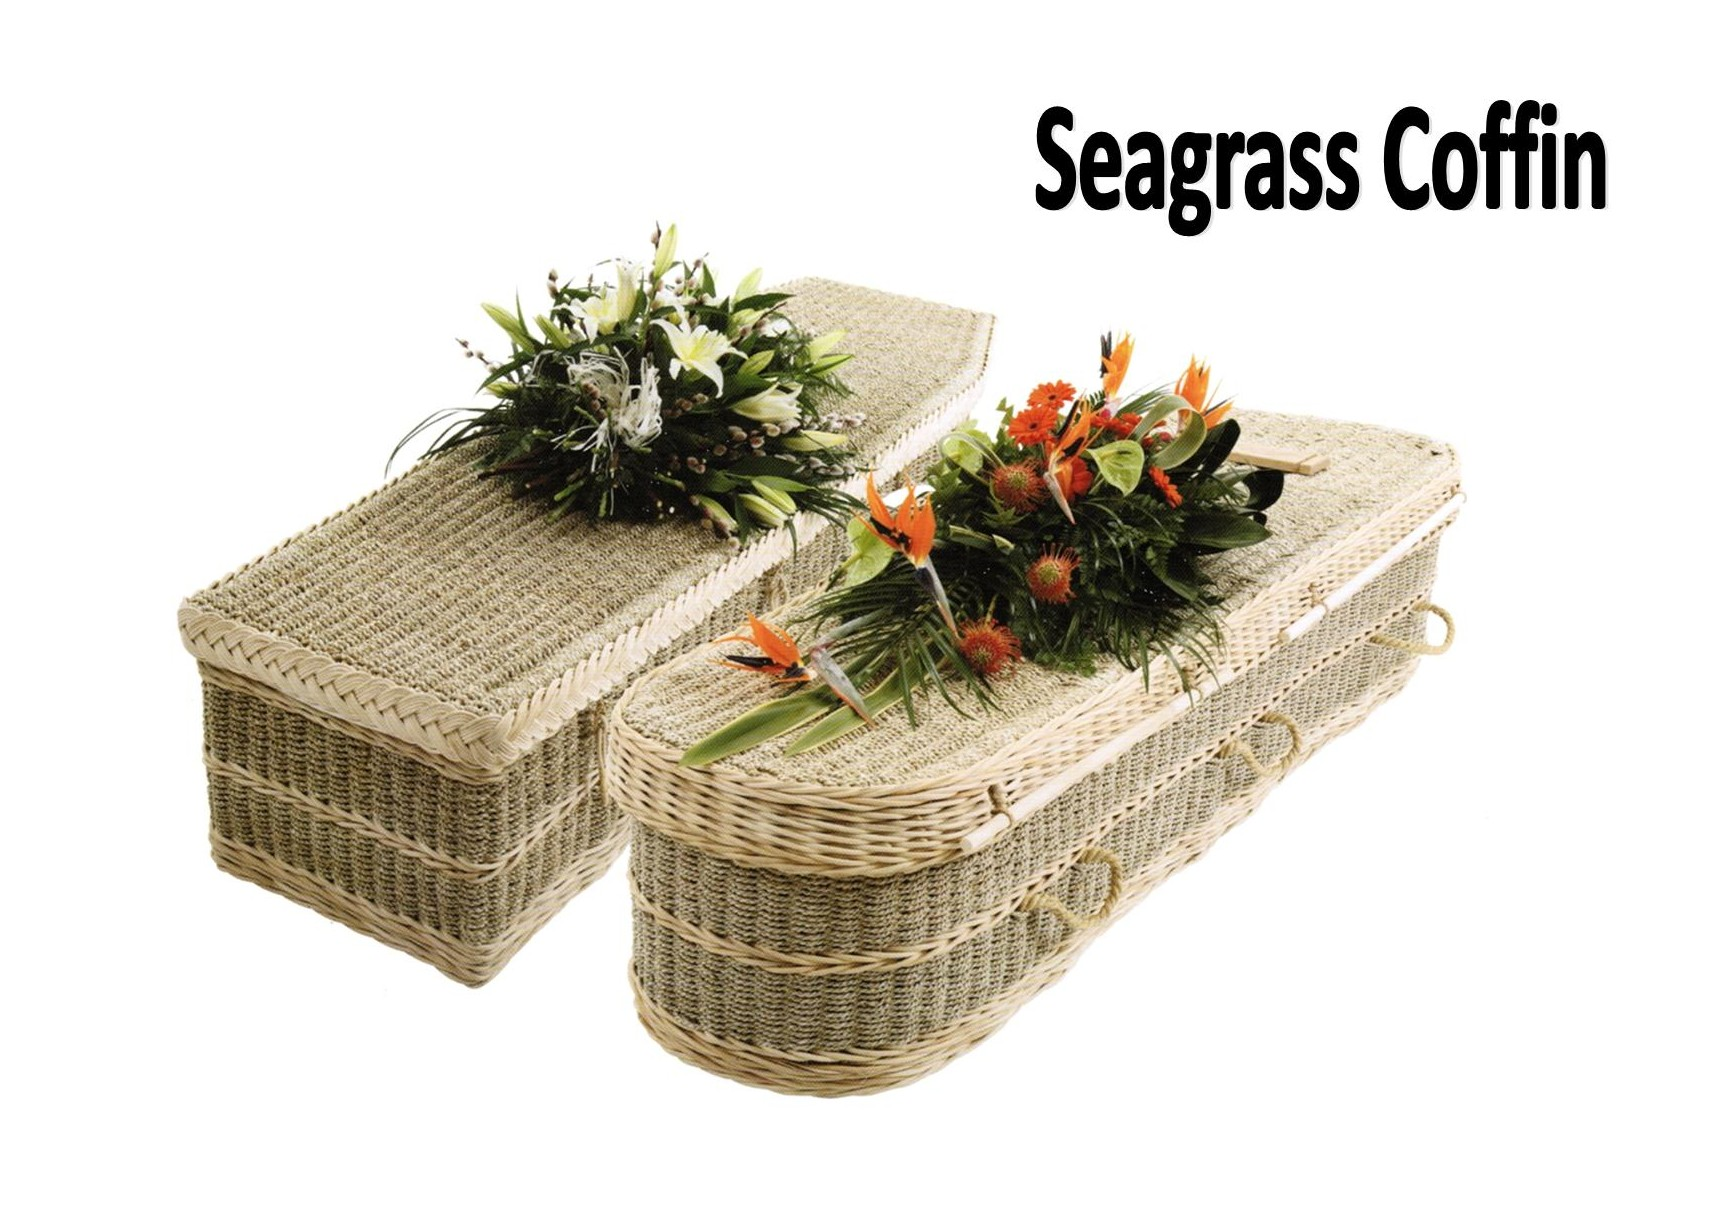 Cropped Seagrass Coffin